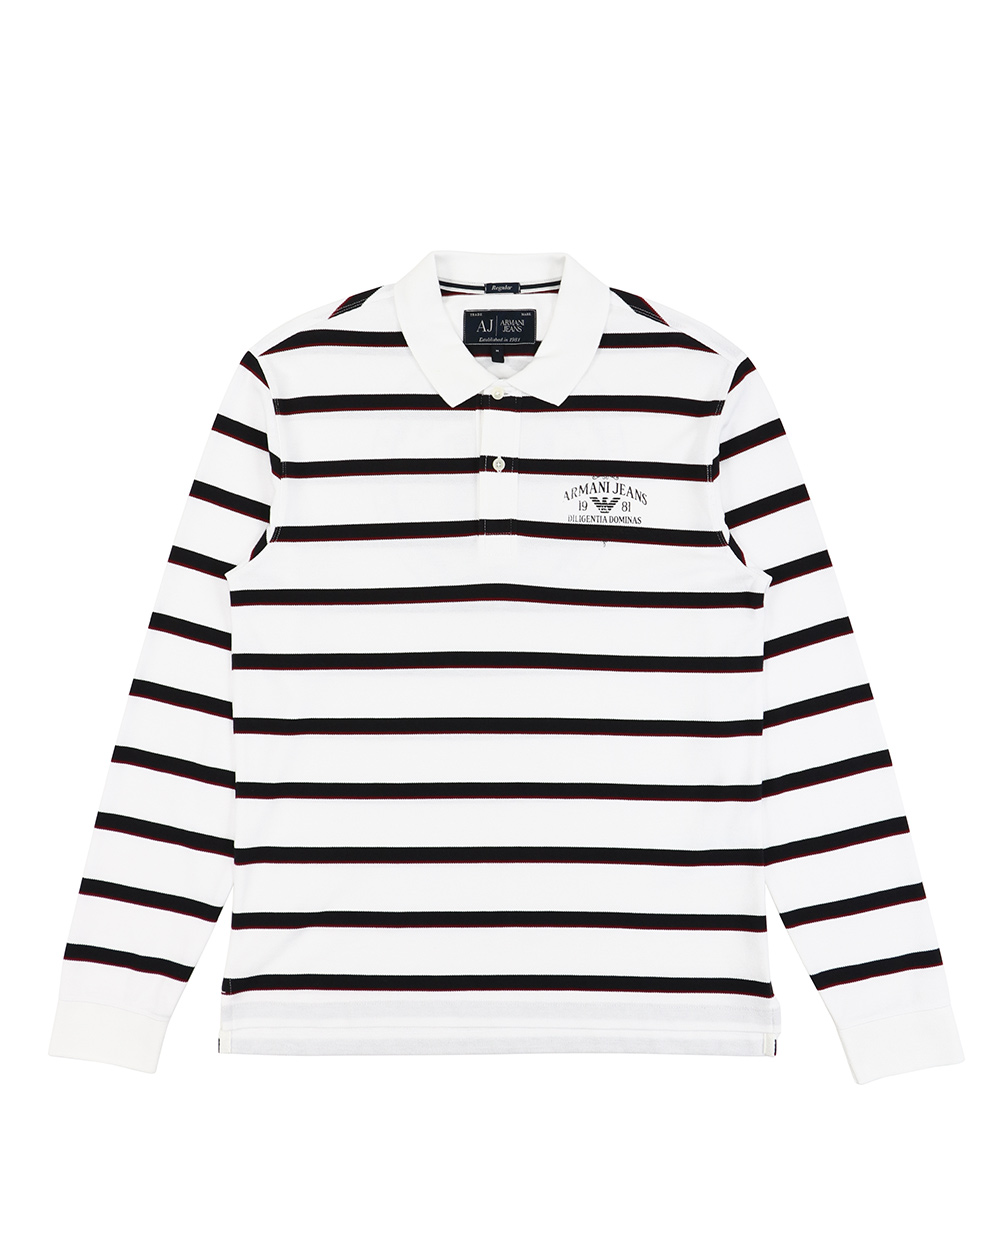 Cotton Striped Printed Short Long Sleeves Polo Shirt